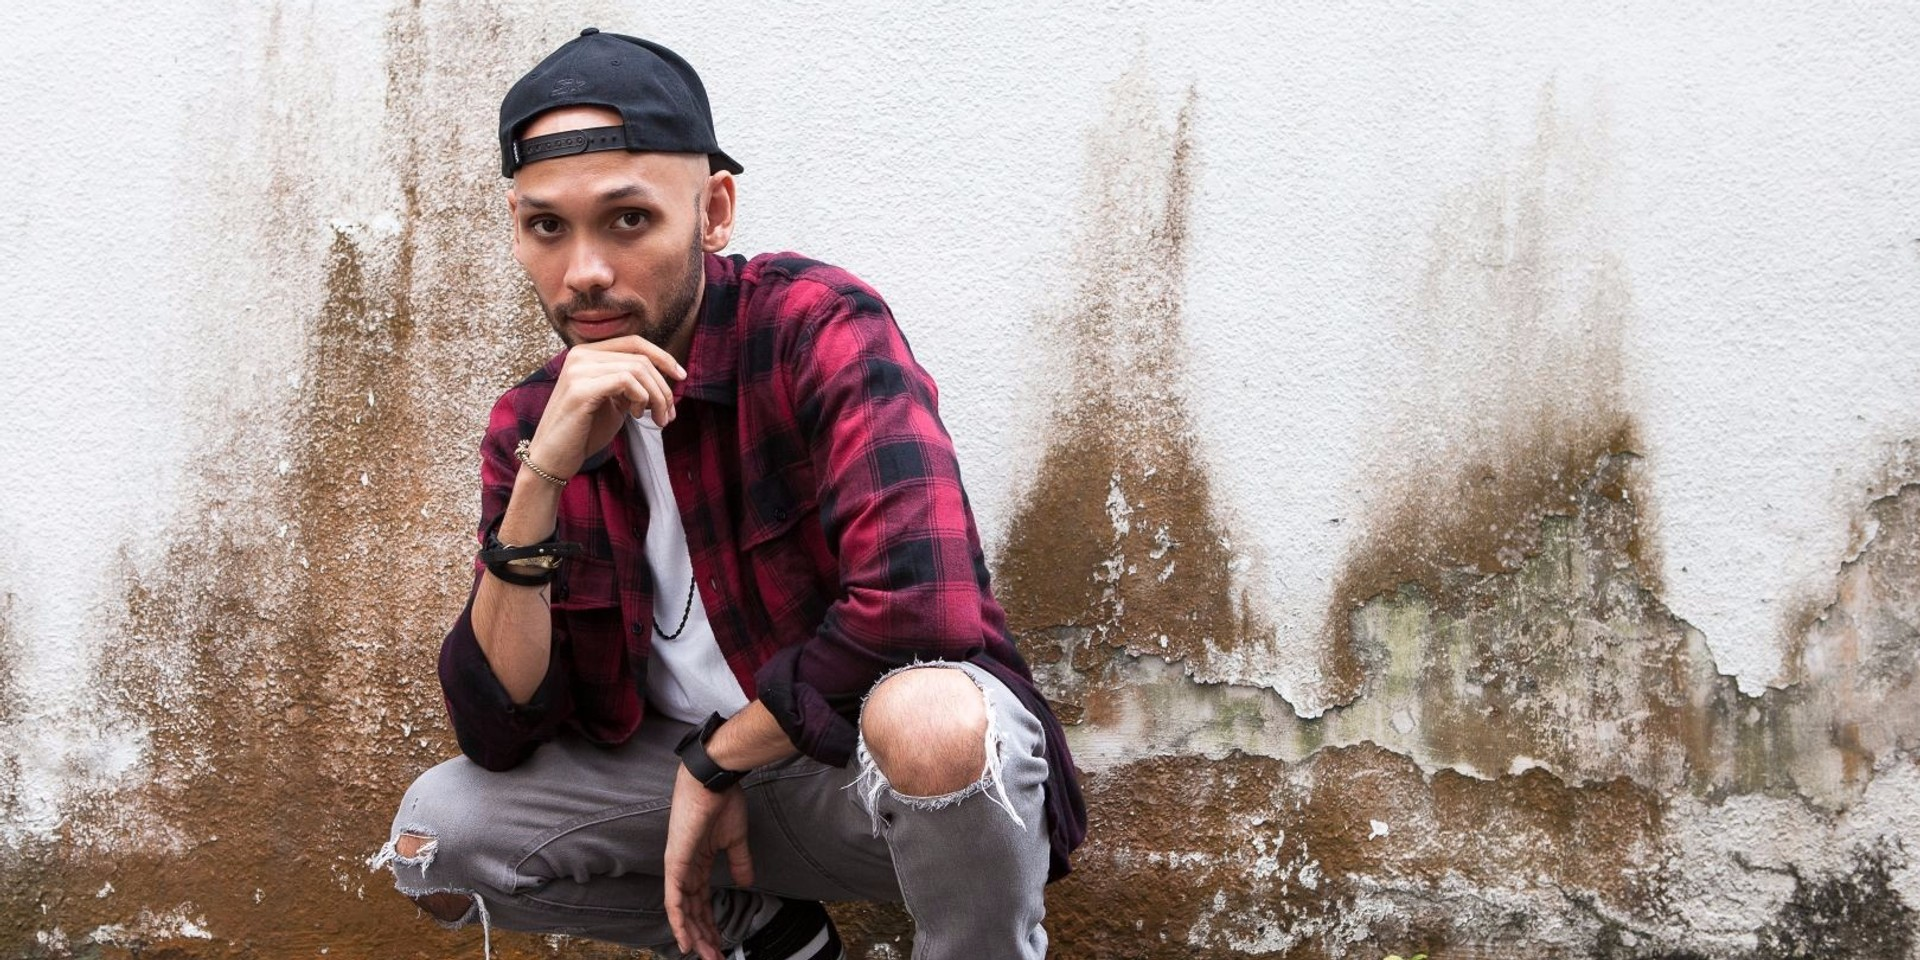 Singapore GP announce more acts ahead for race weekend: THELIONCITYBOY, Tabitha Nauser, Sam Rui and more